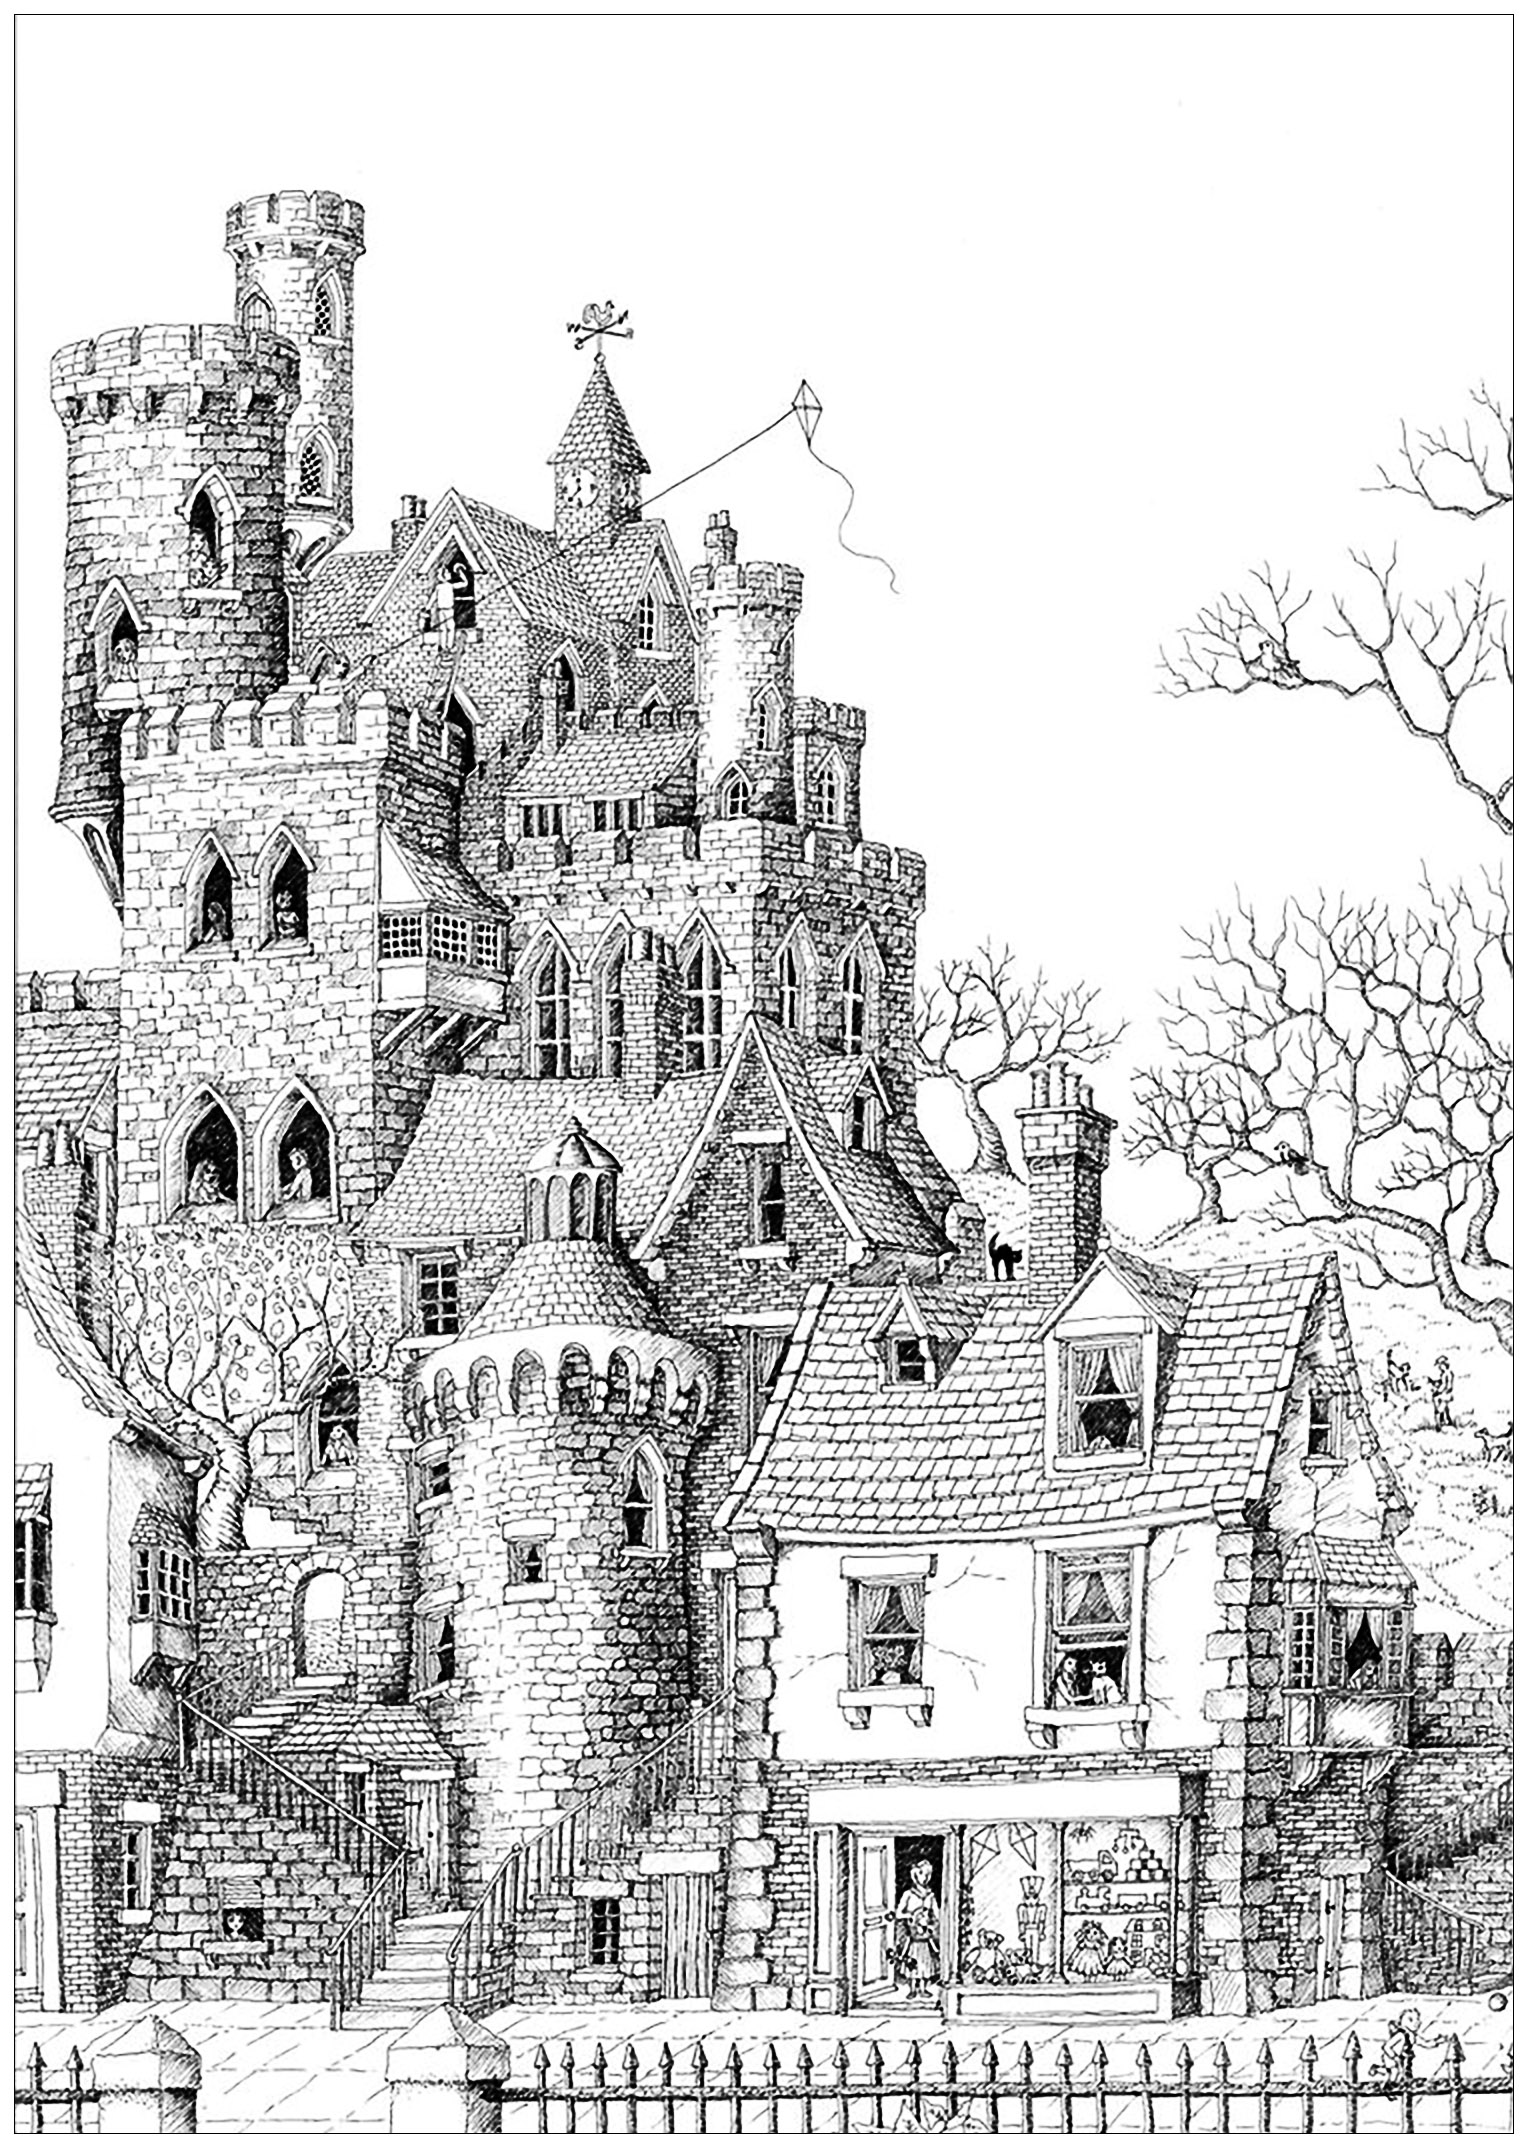 coloring pages of a castle building coloring pages for adults page 3 coloring of castle pages a